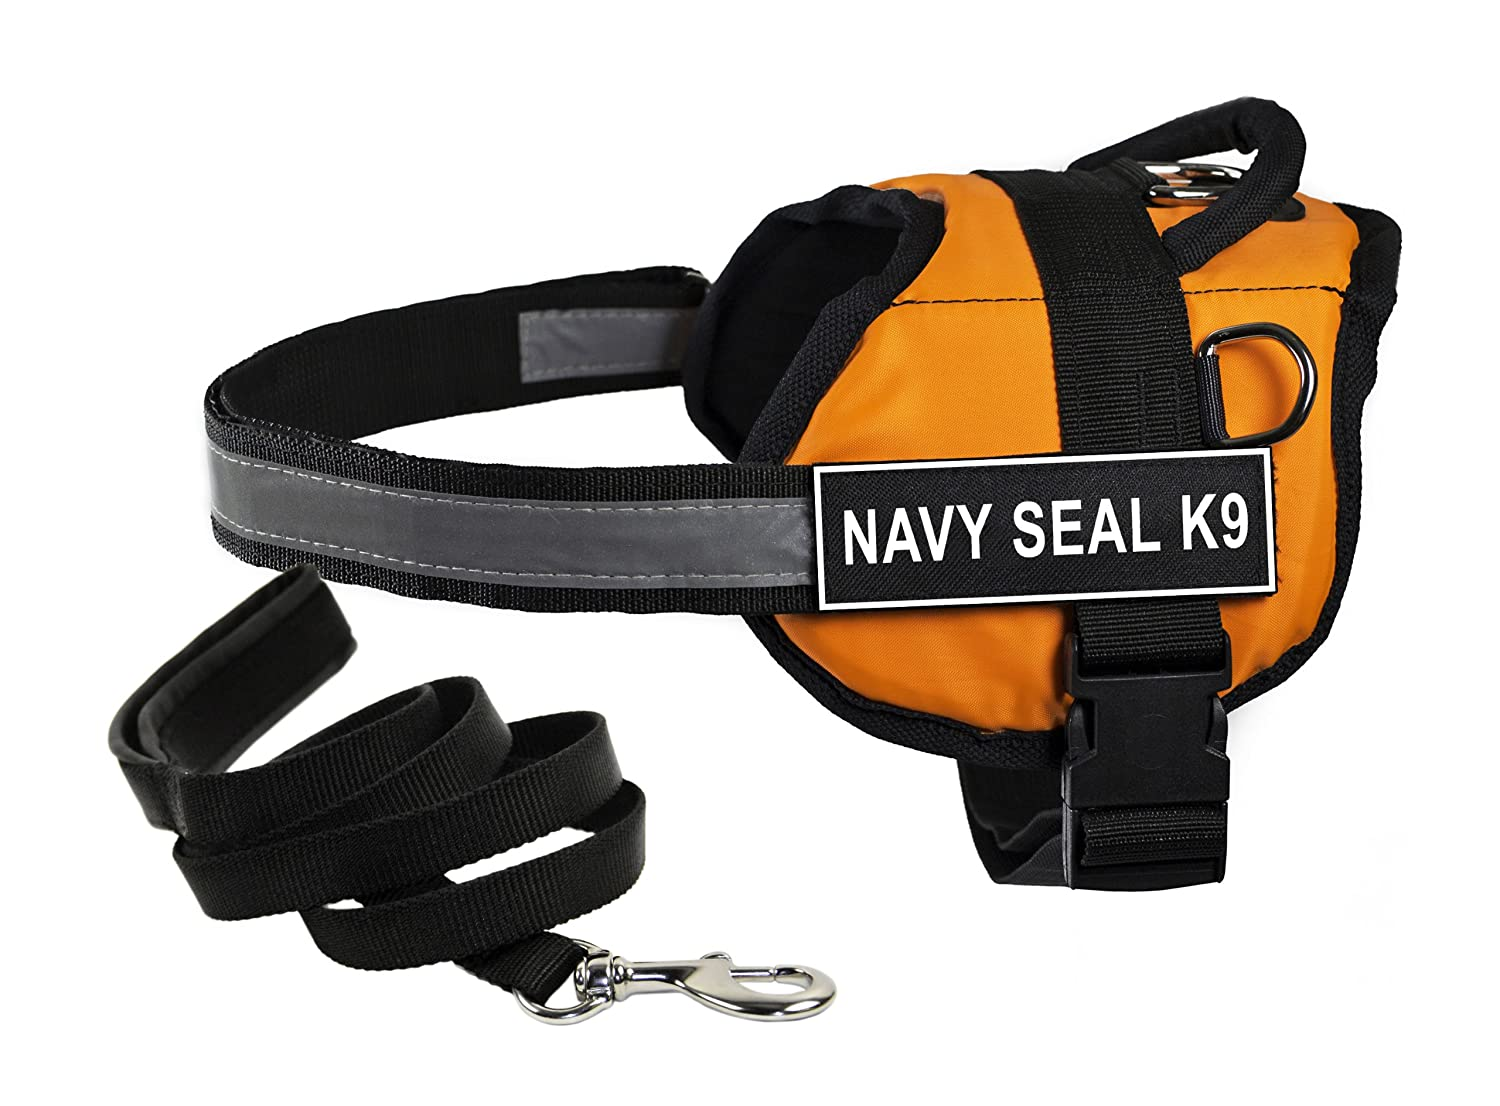 Dean & Tyler's DT Works orange NAVY SEAL K9 Harness with Chest Padding, Small, and Black 6 ft Padded Puppy Leash.